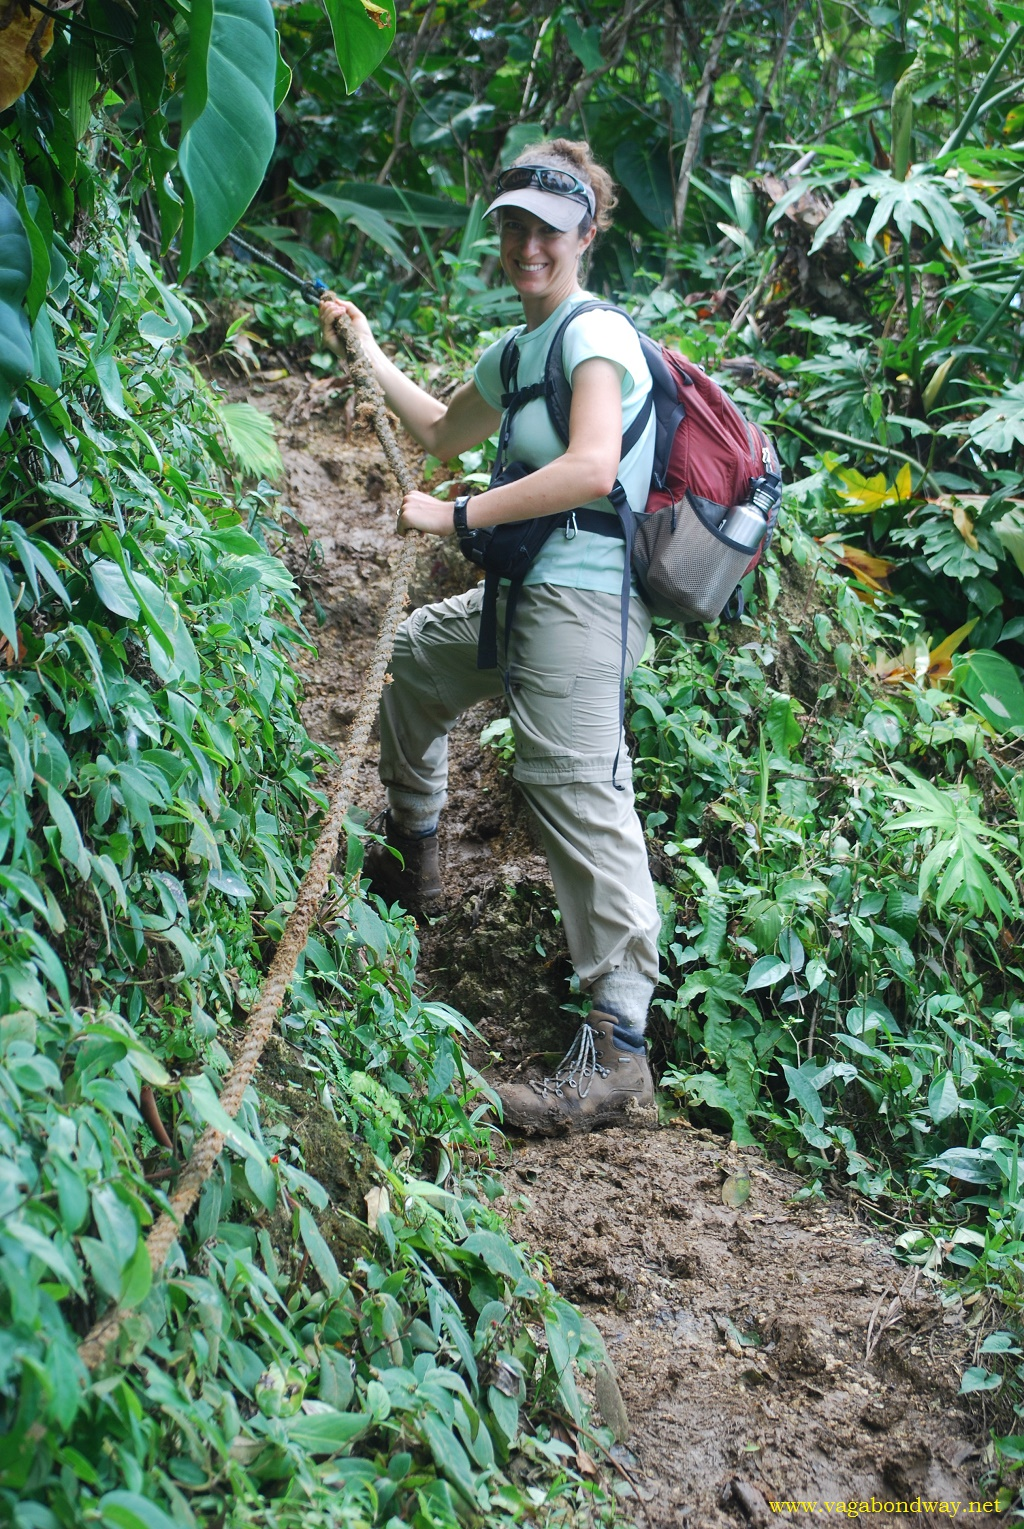 Hiking Adventure in Costa Rican Jungle